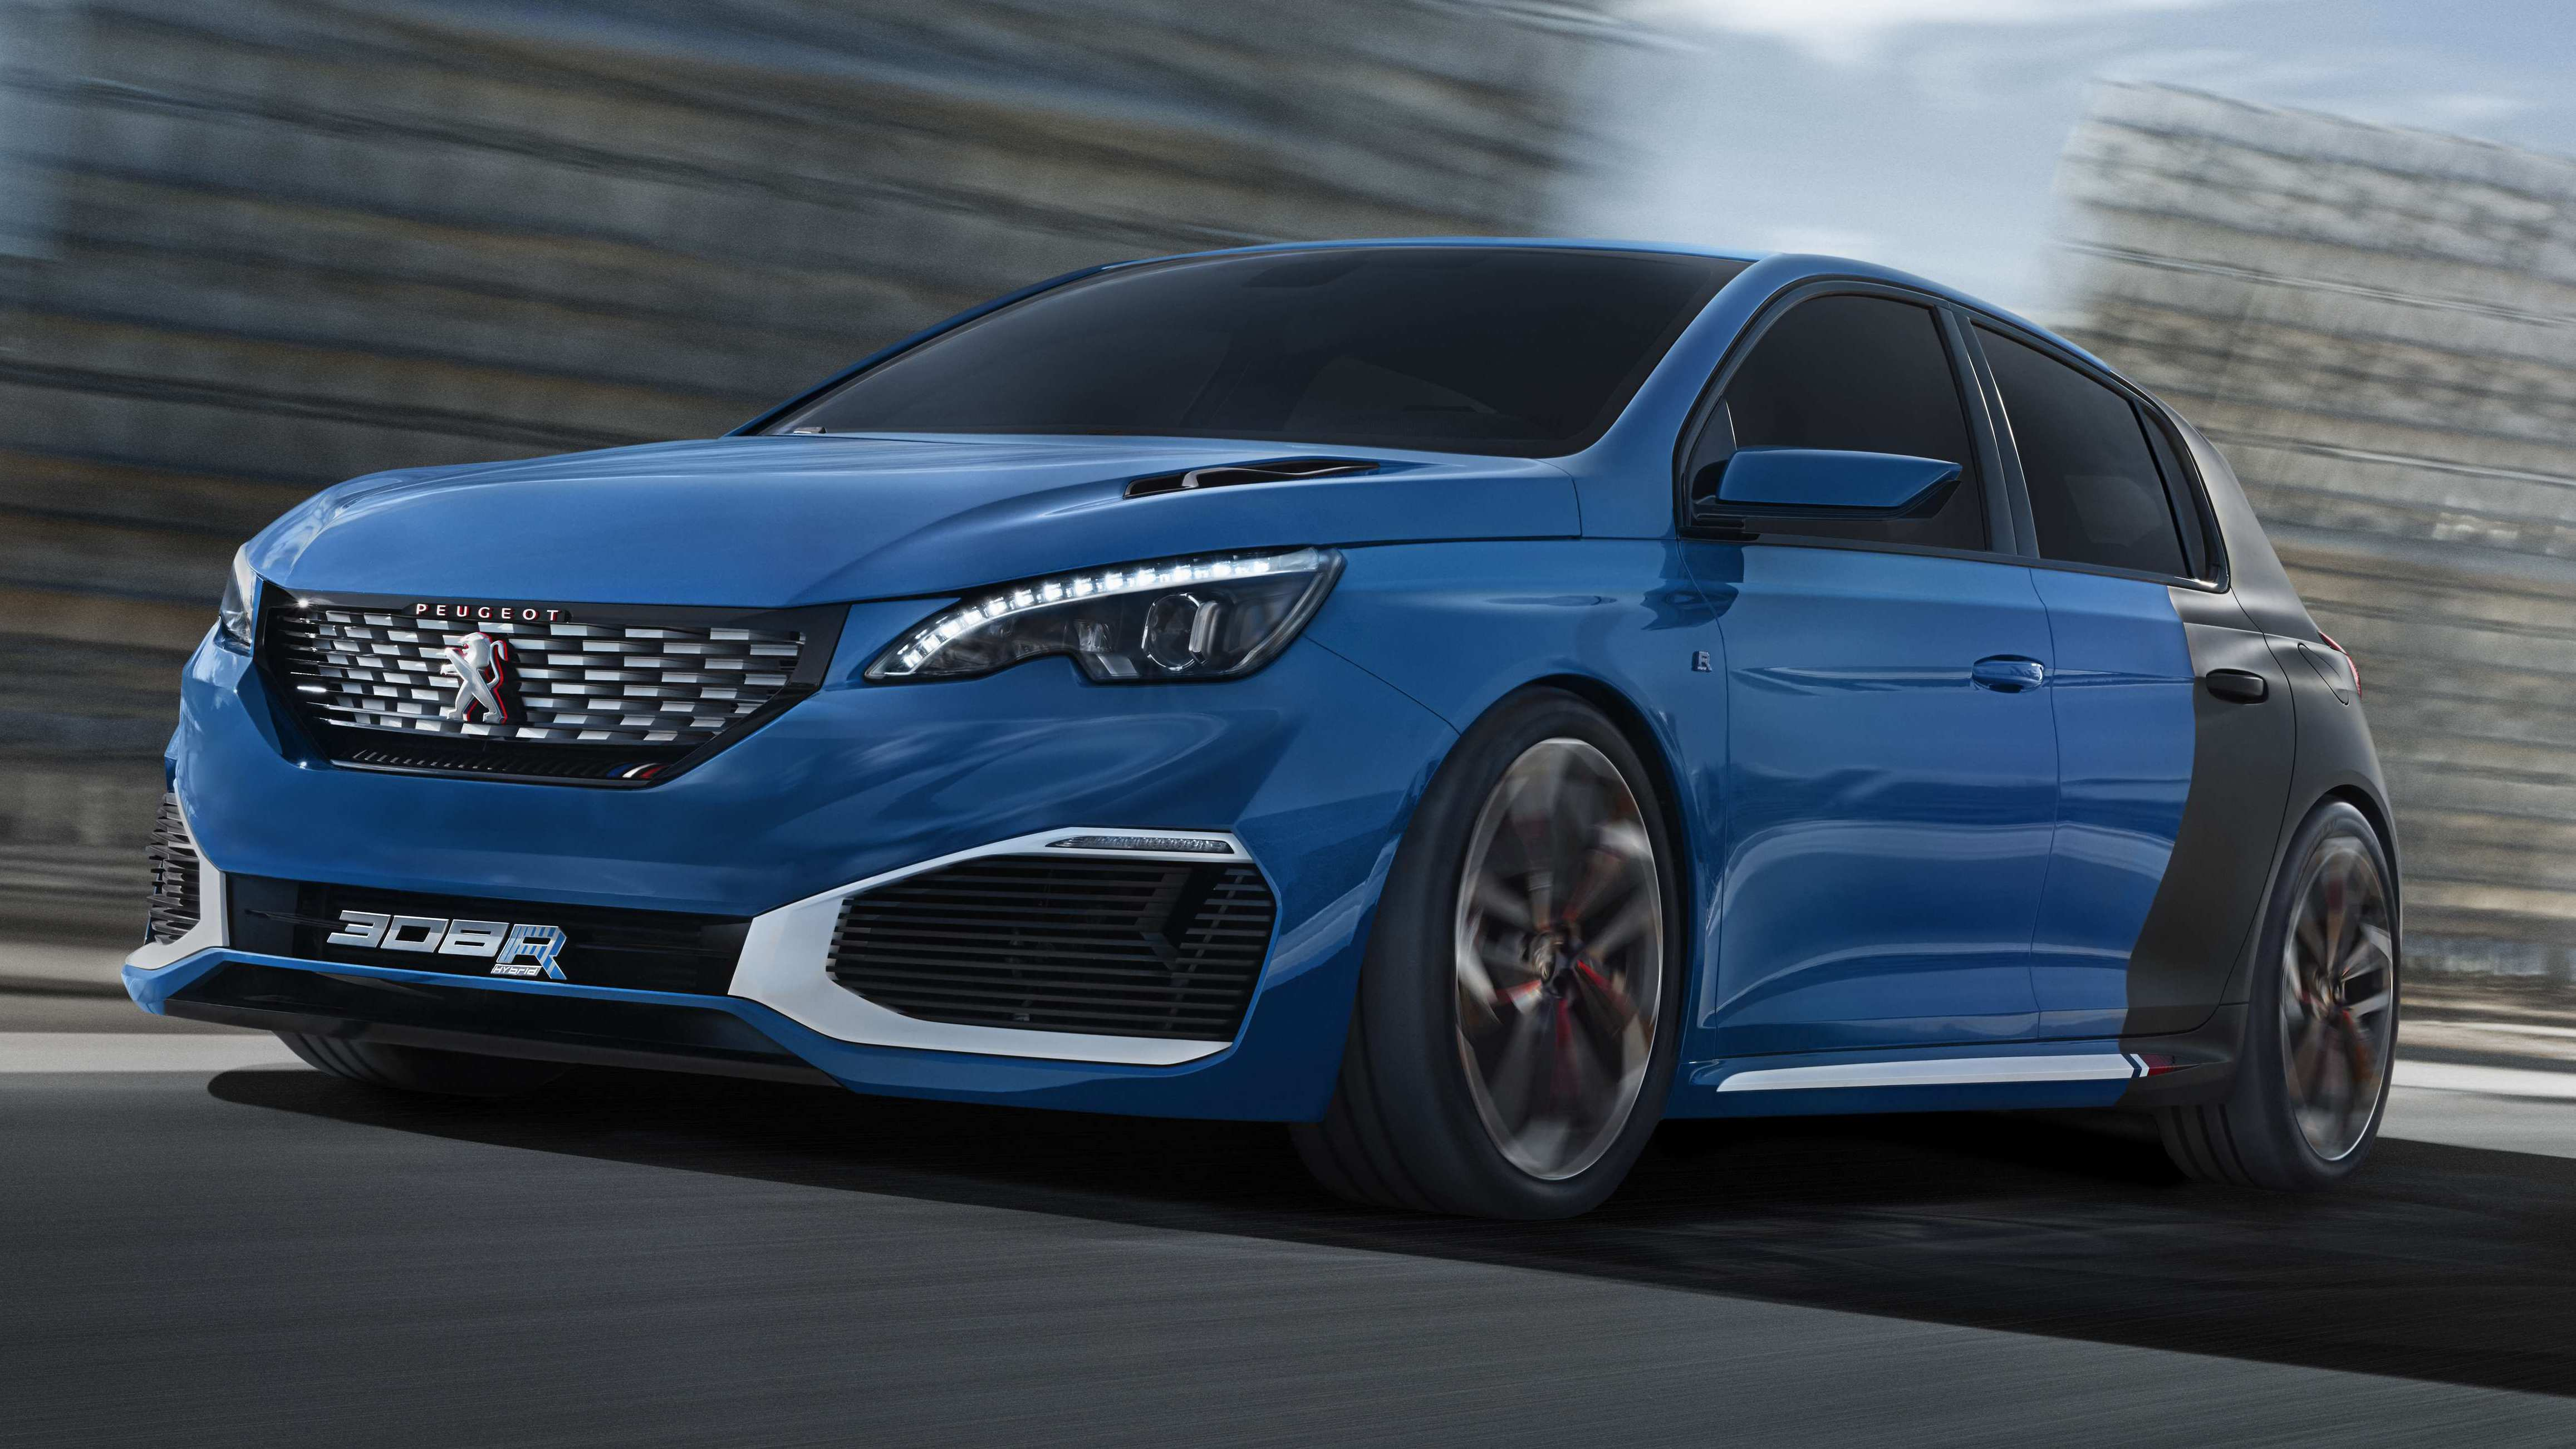 40 All New 2020 Peugeot 308 New Concept